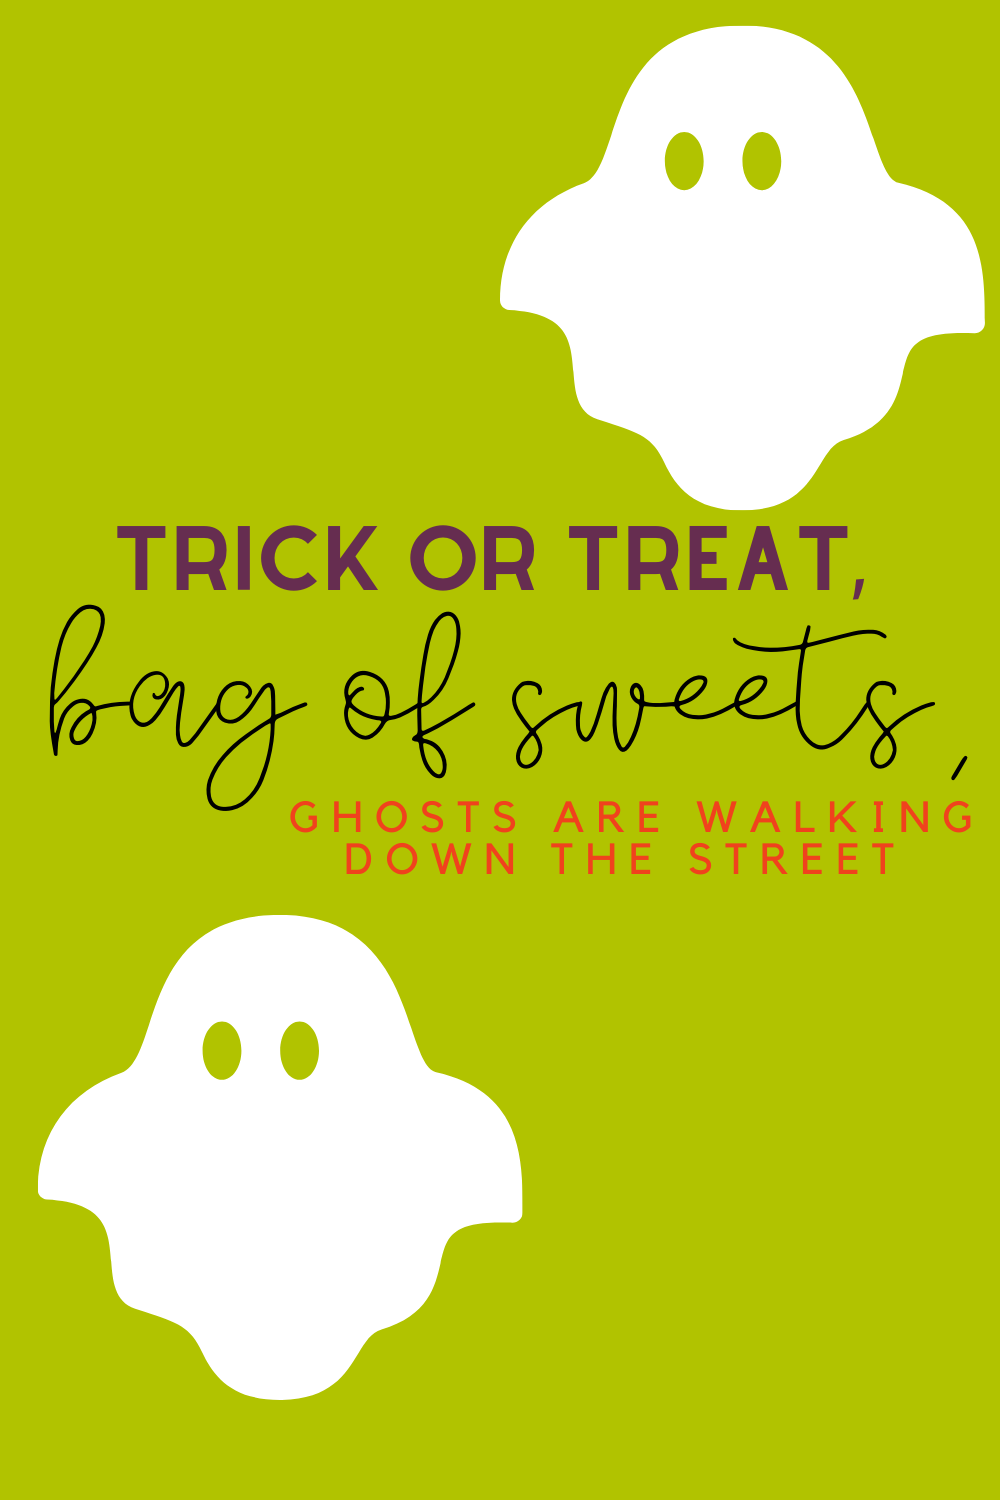 trick or treat images